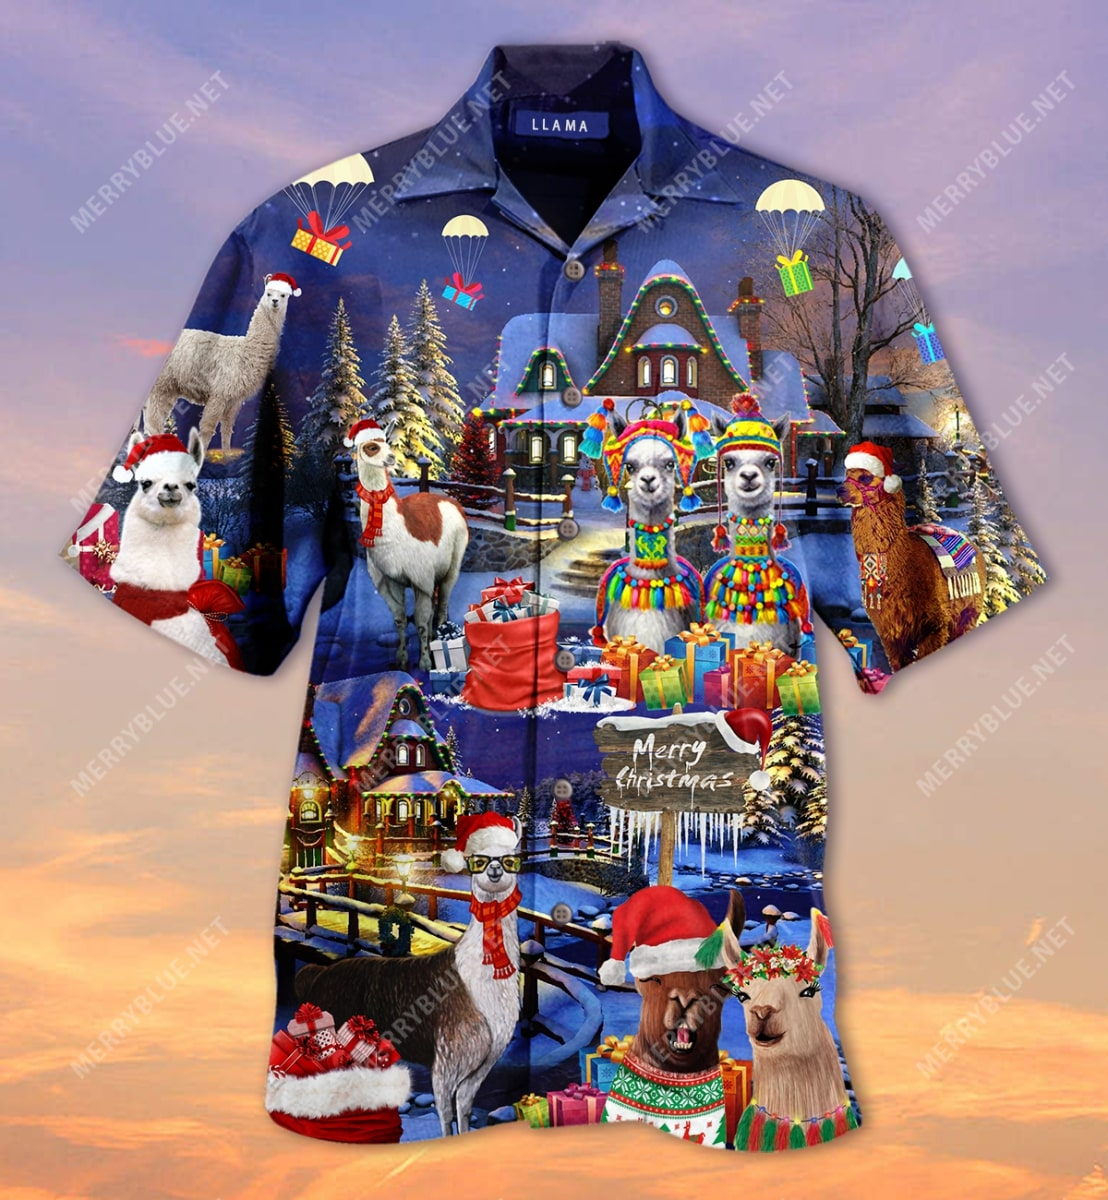 fa la la llama and merry christmas full printing hawaiian shirt 5